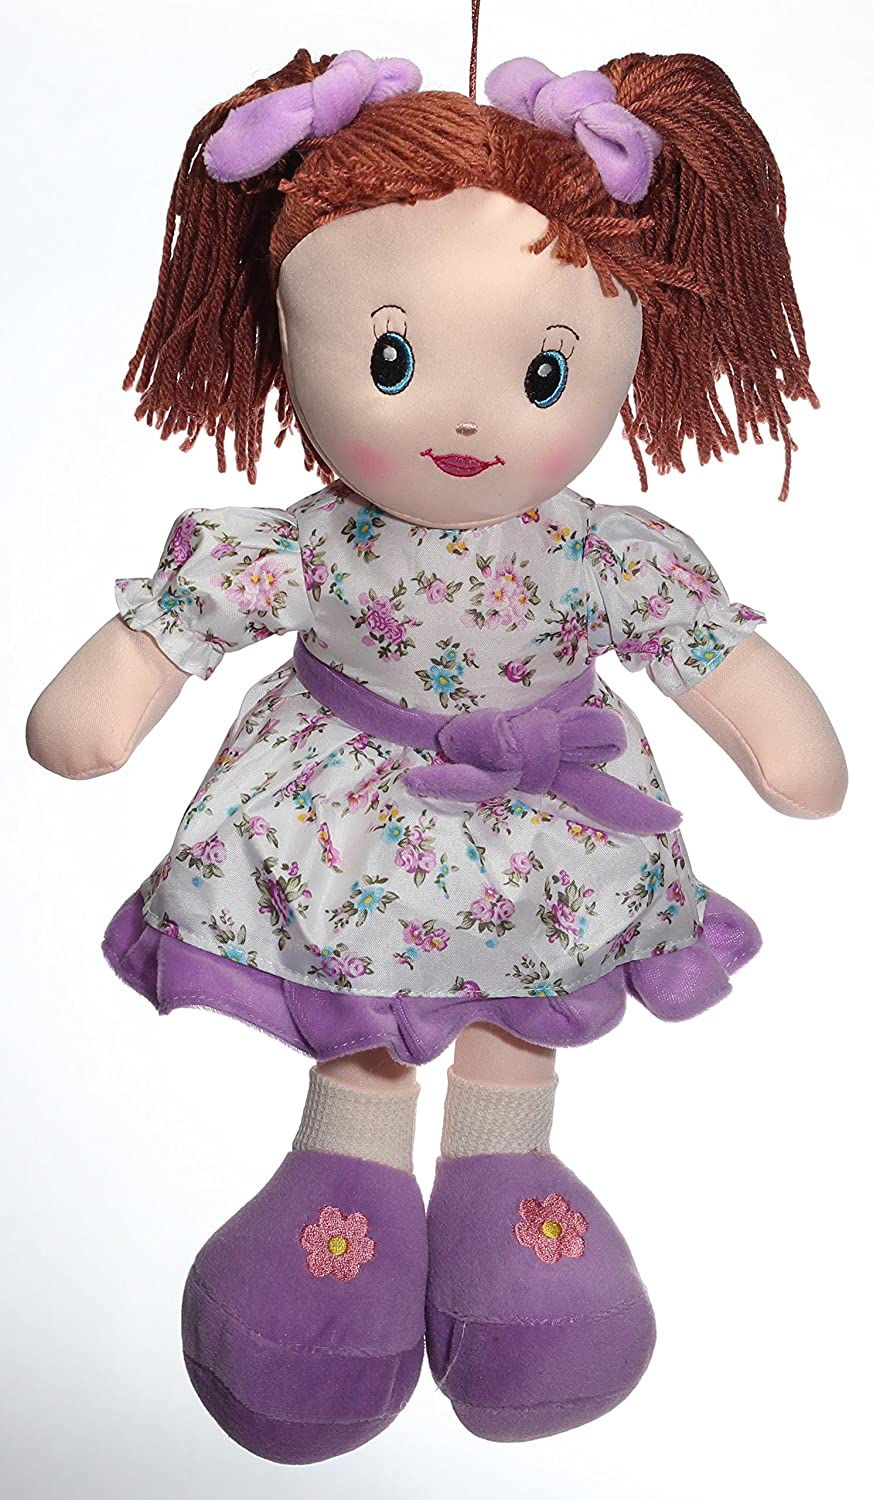 Calplush 12 Brunette Hair Girl with Pigtails and Flower Dress Animal Plush 9213-12 purple with brunette hair